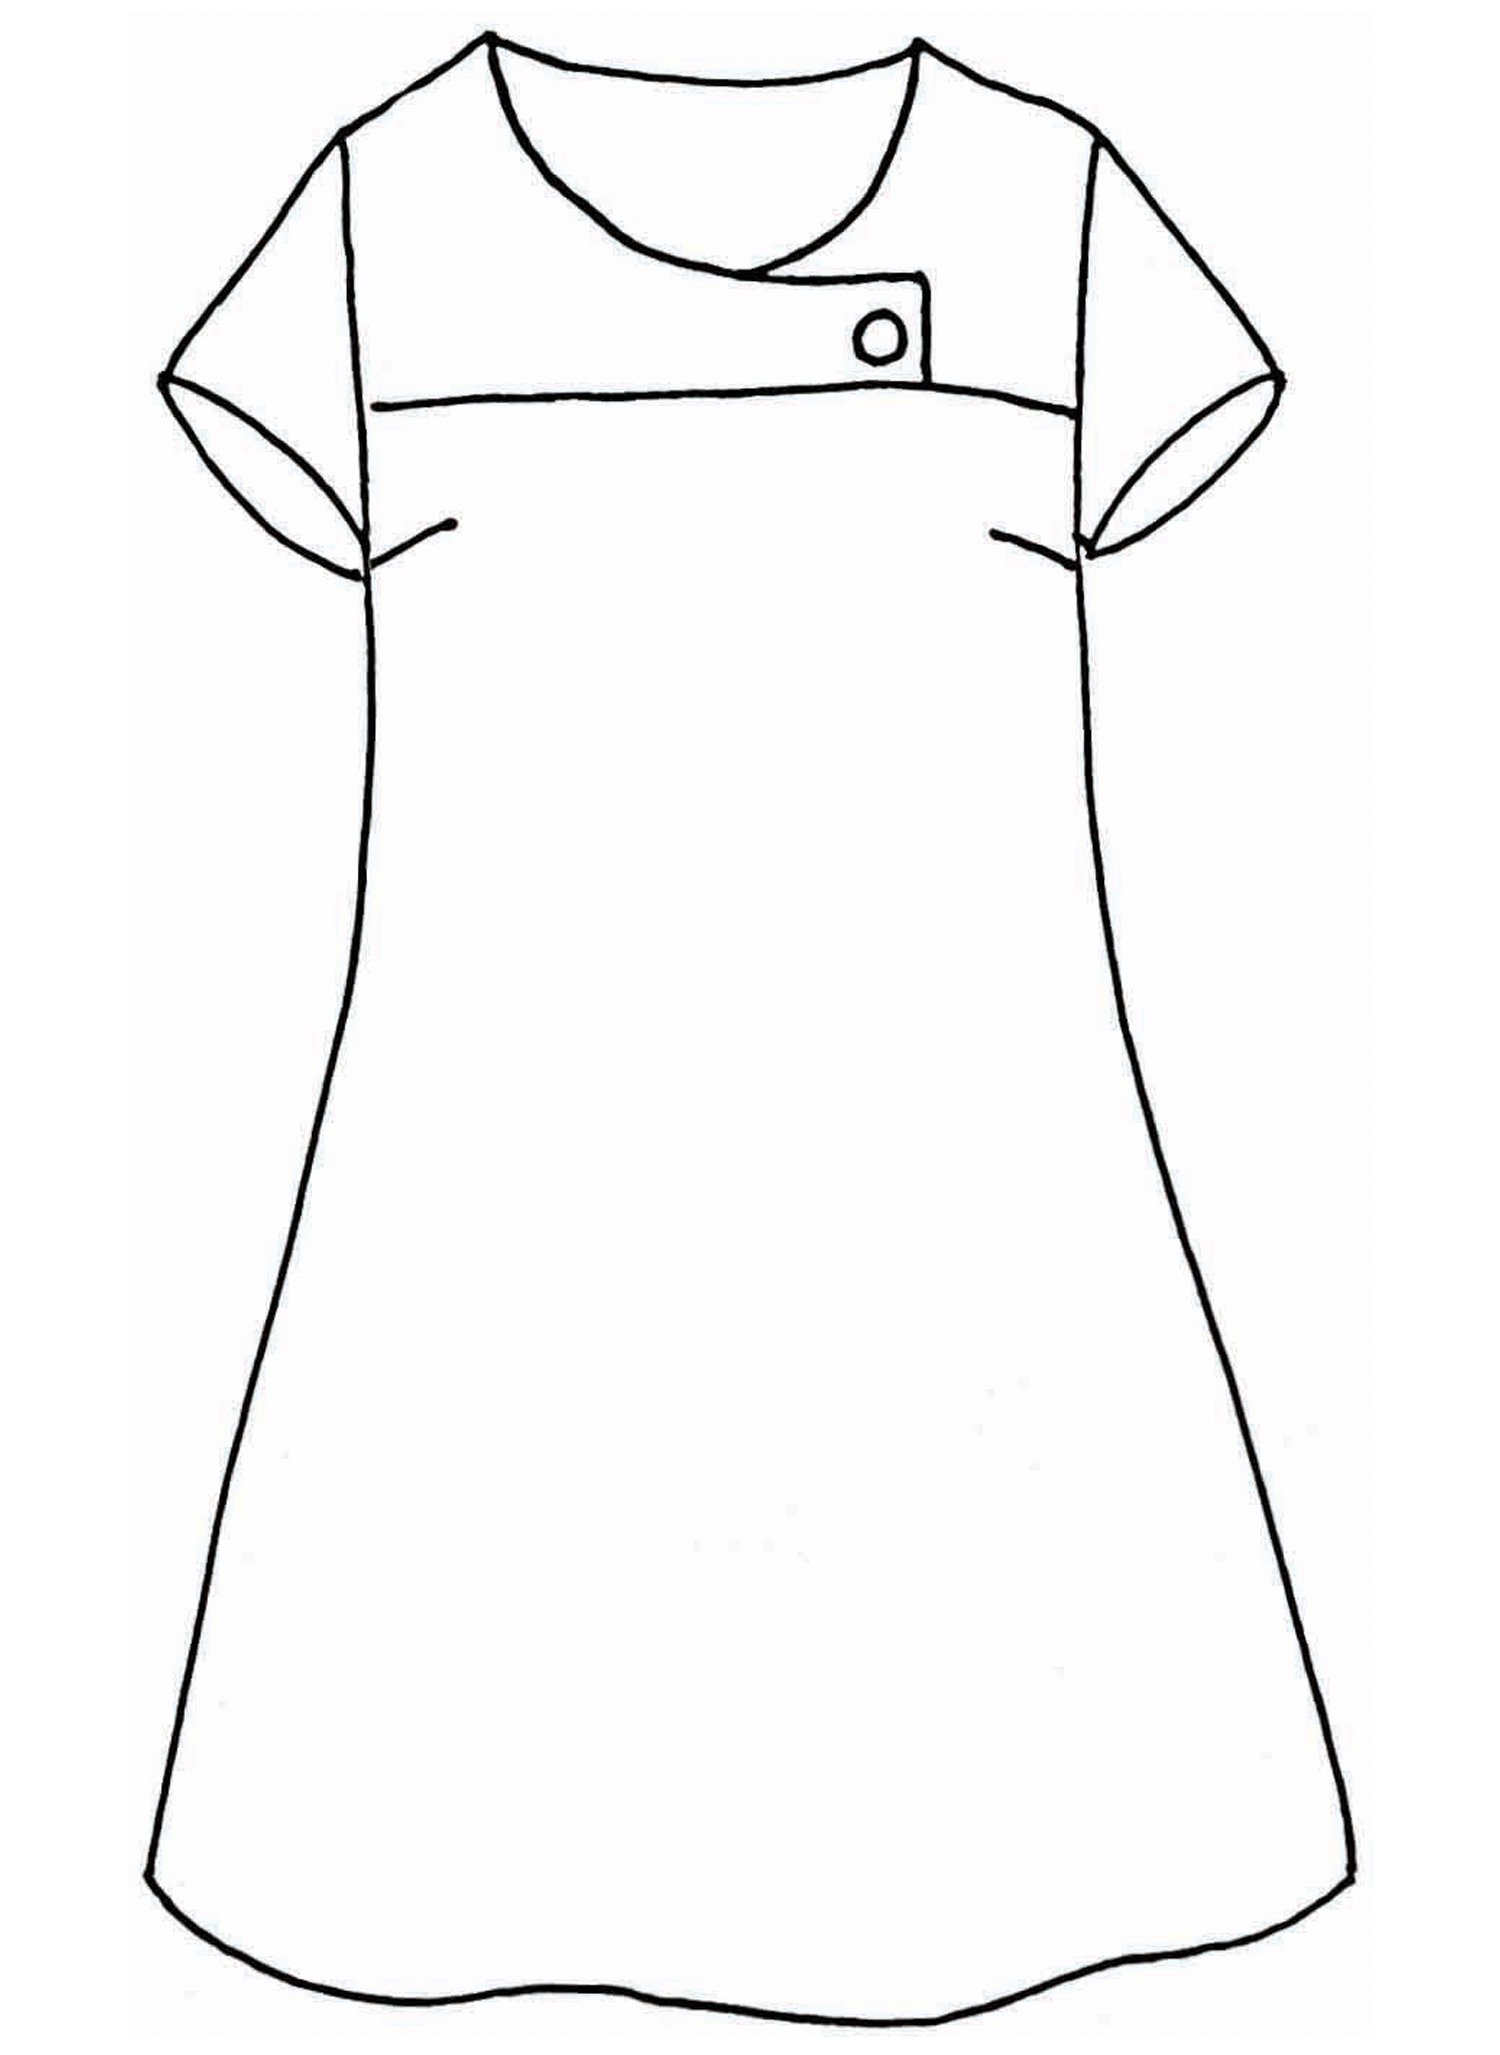 Button Dress sketch image